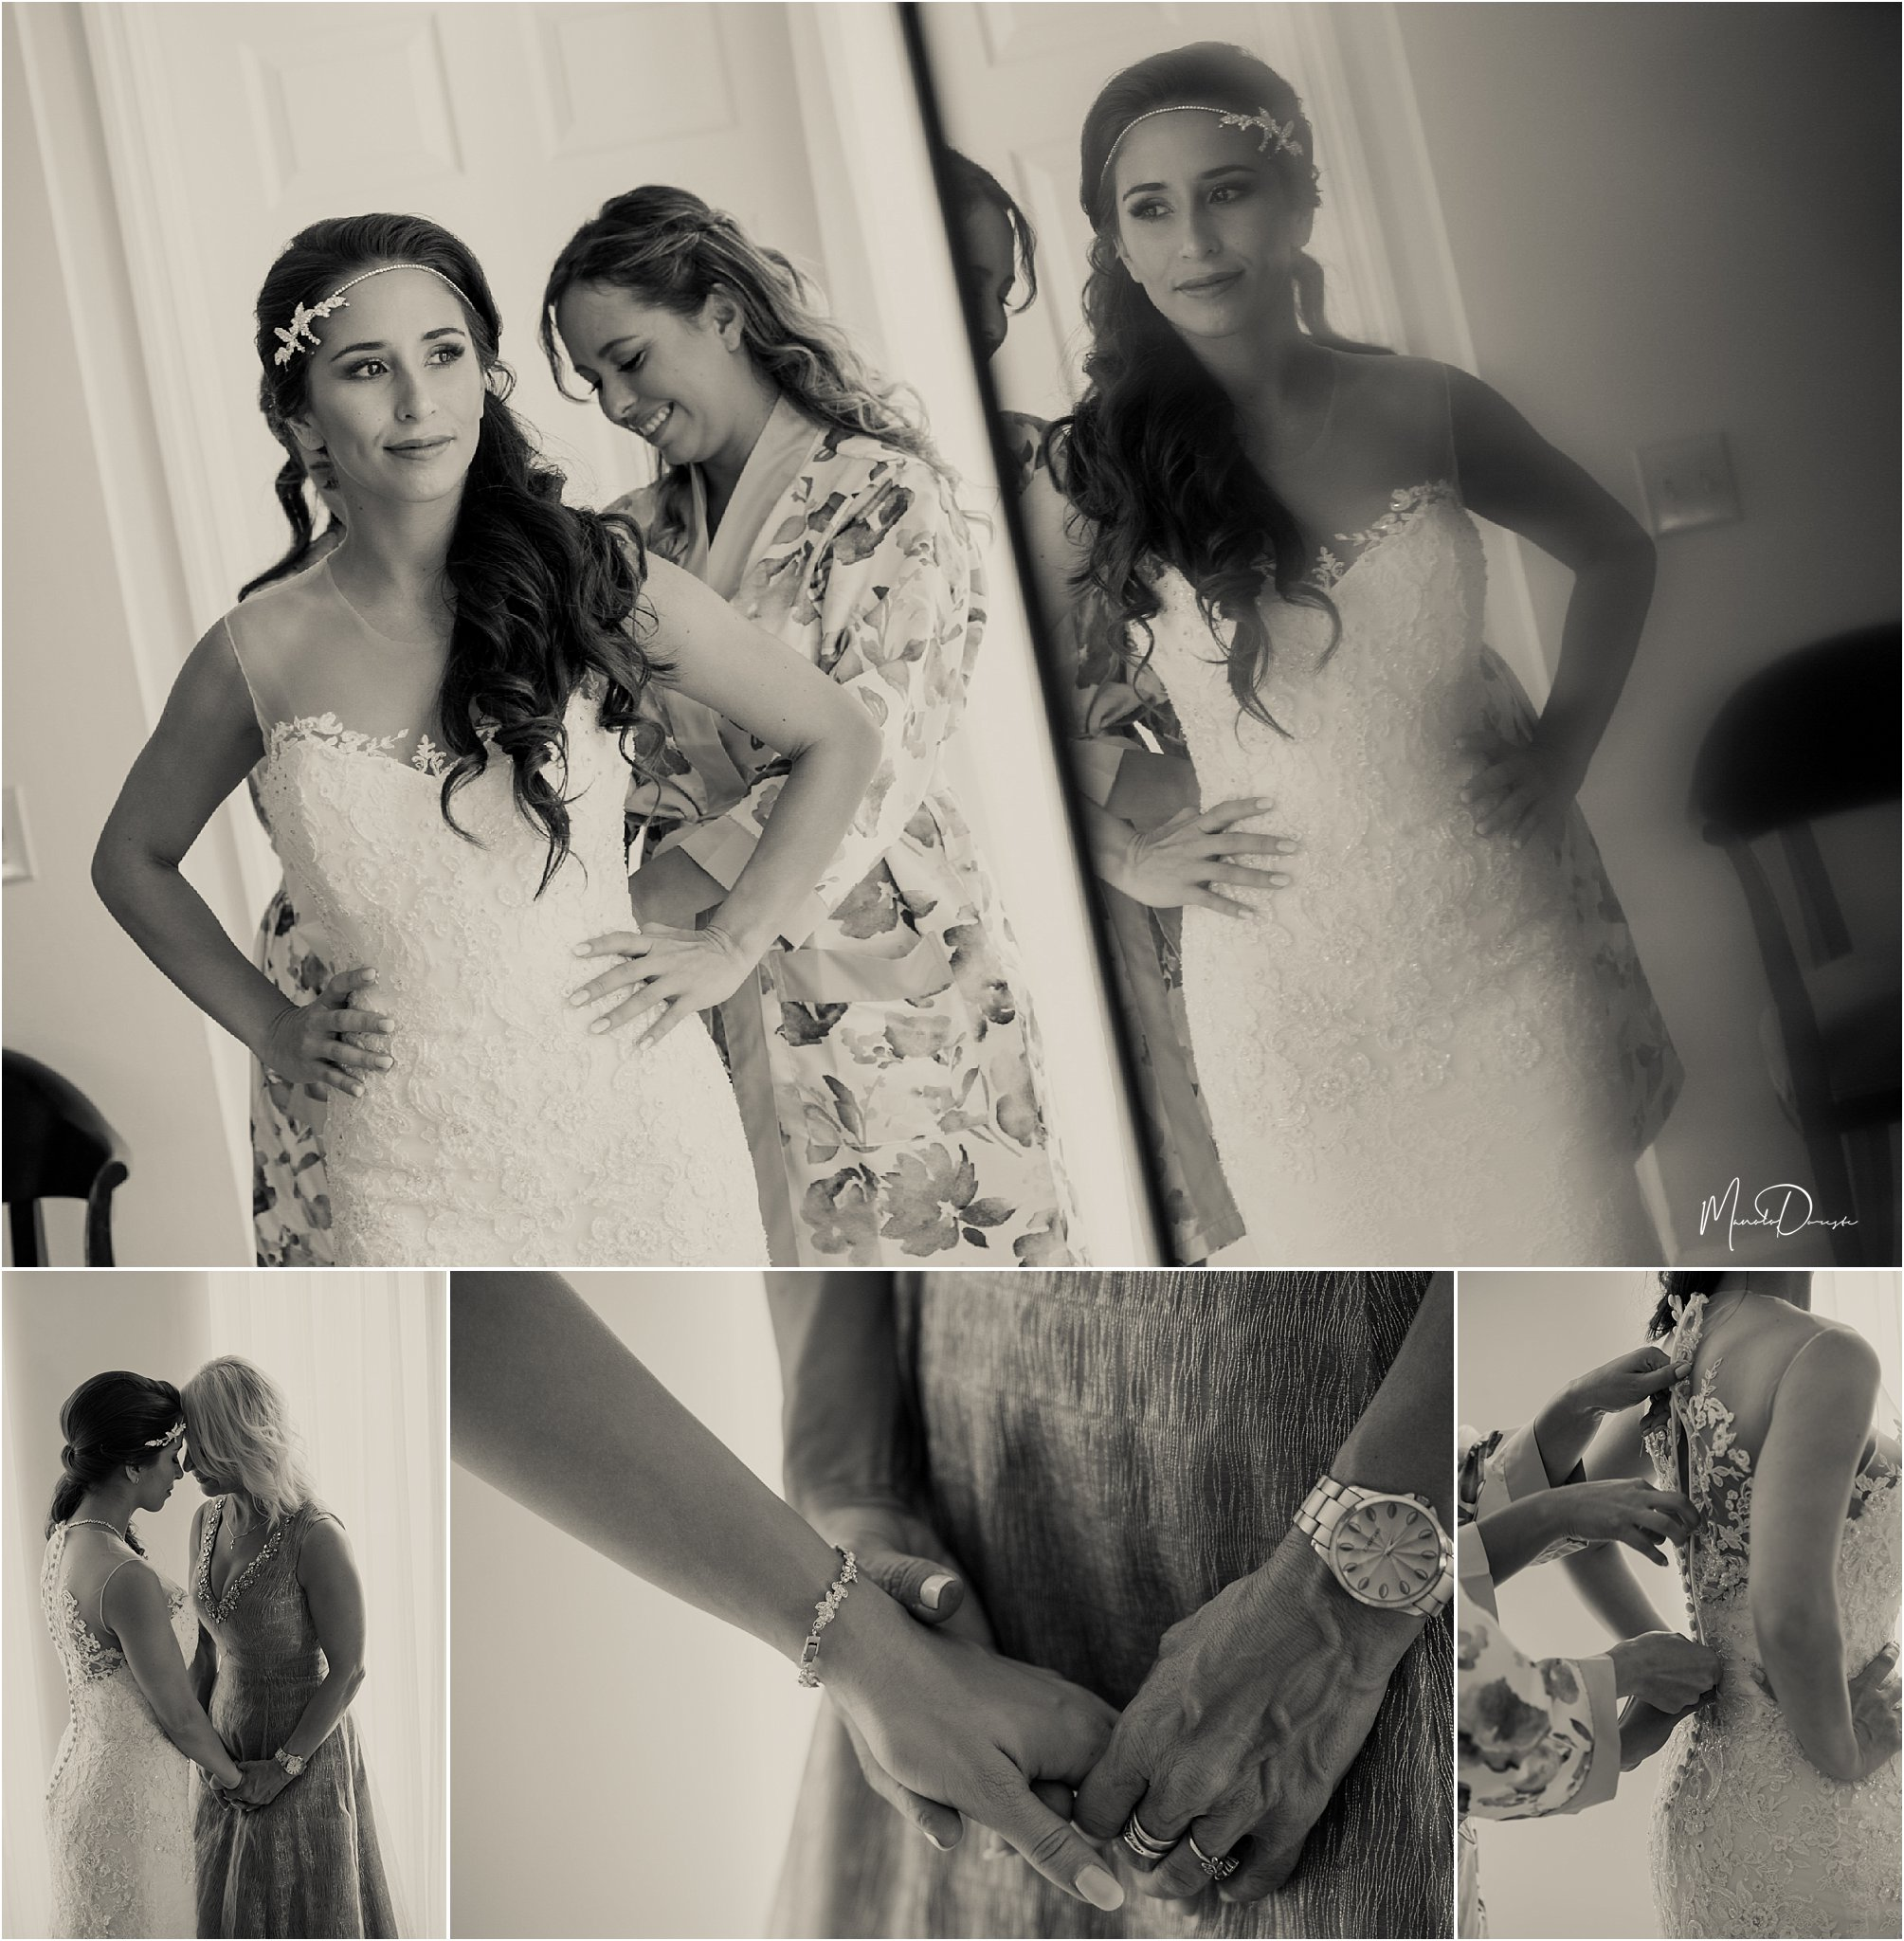 0153_ManoloDoreste_InFocusStudios_Wedding_Family_Photography_Miami_MiamiPhotographer.jpg